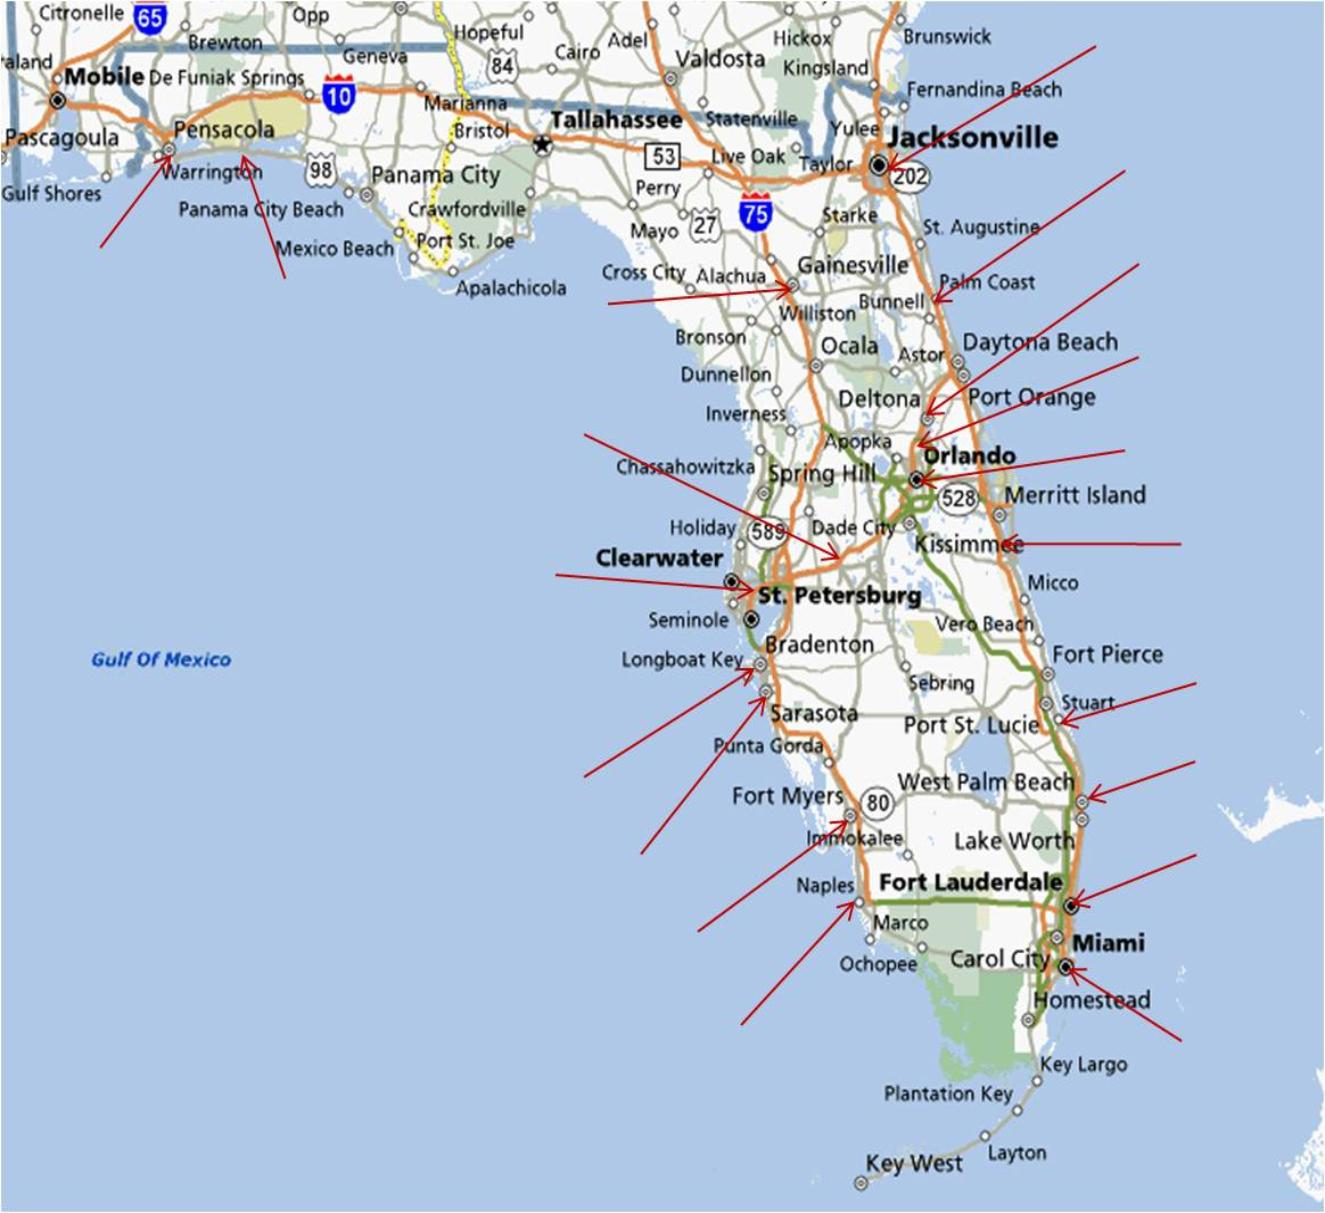 Map Of Eastern Fl And Travel Information | Download Free Map Of - Printable Map Of Florida Gulf Coast